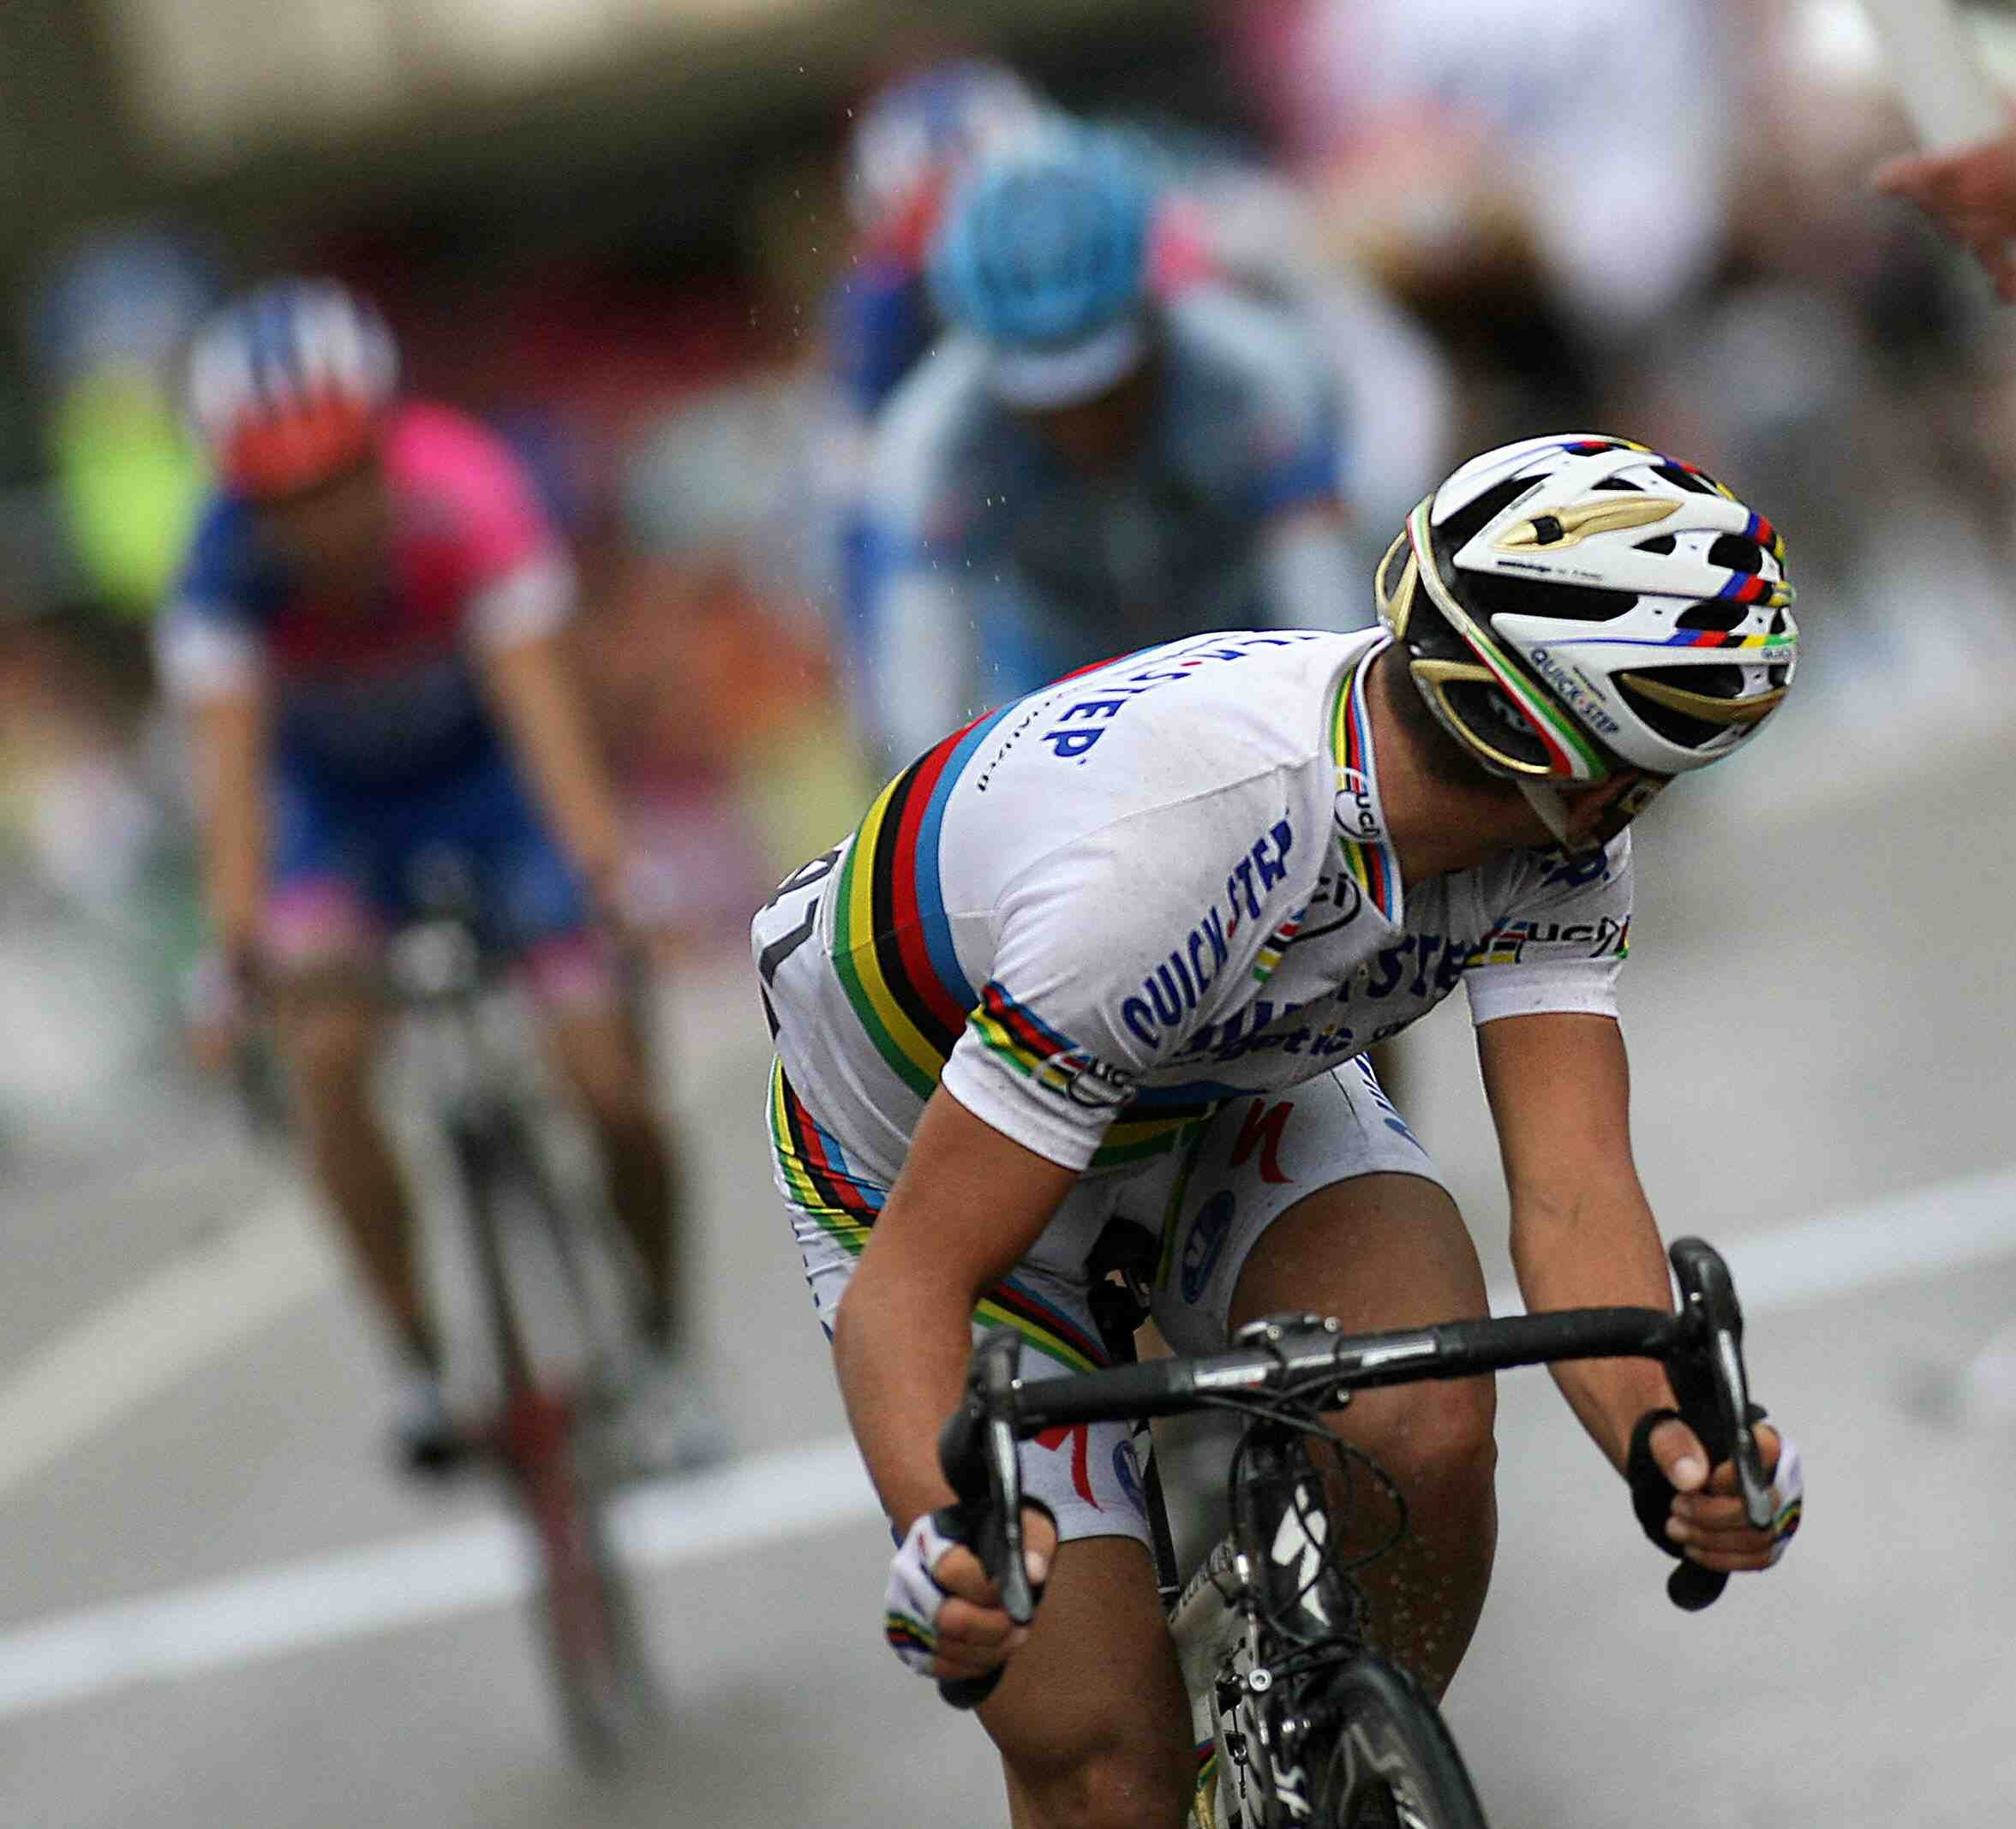 Italy's Paolo Bettini checks his rivals before coasting across the finish line of Stage 12.